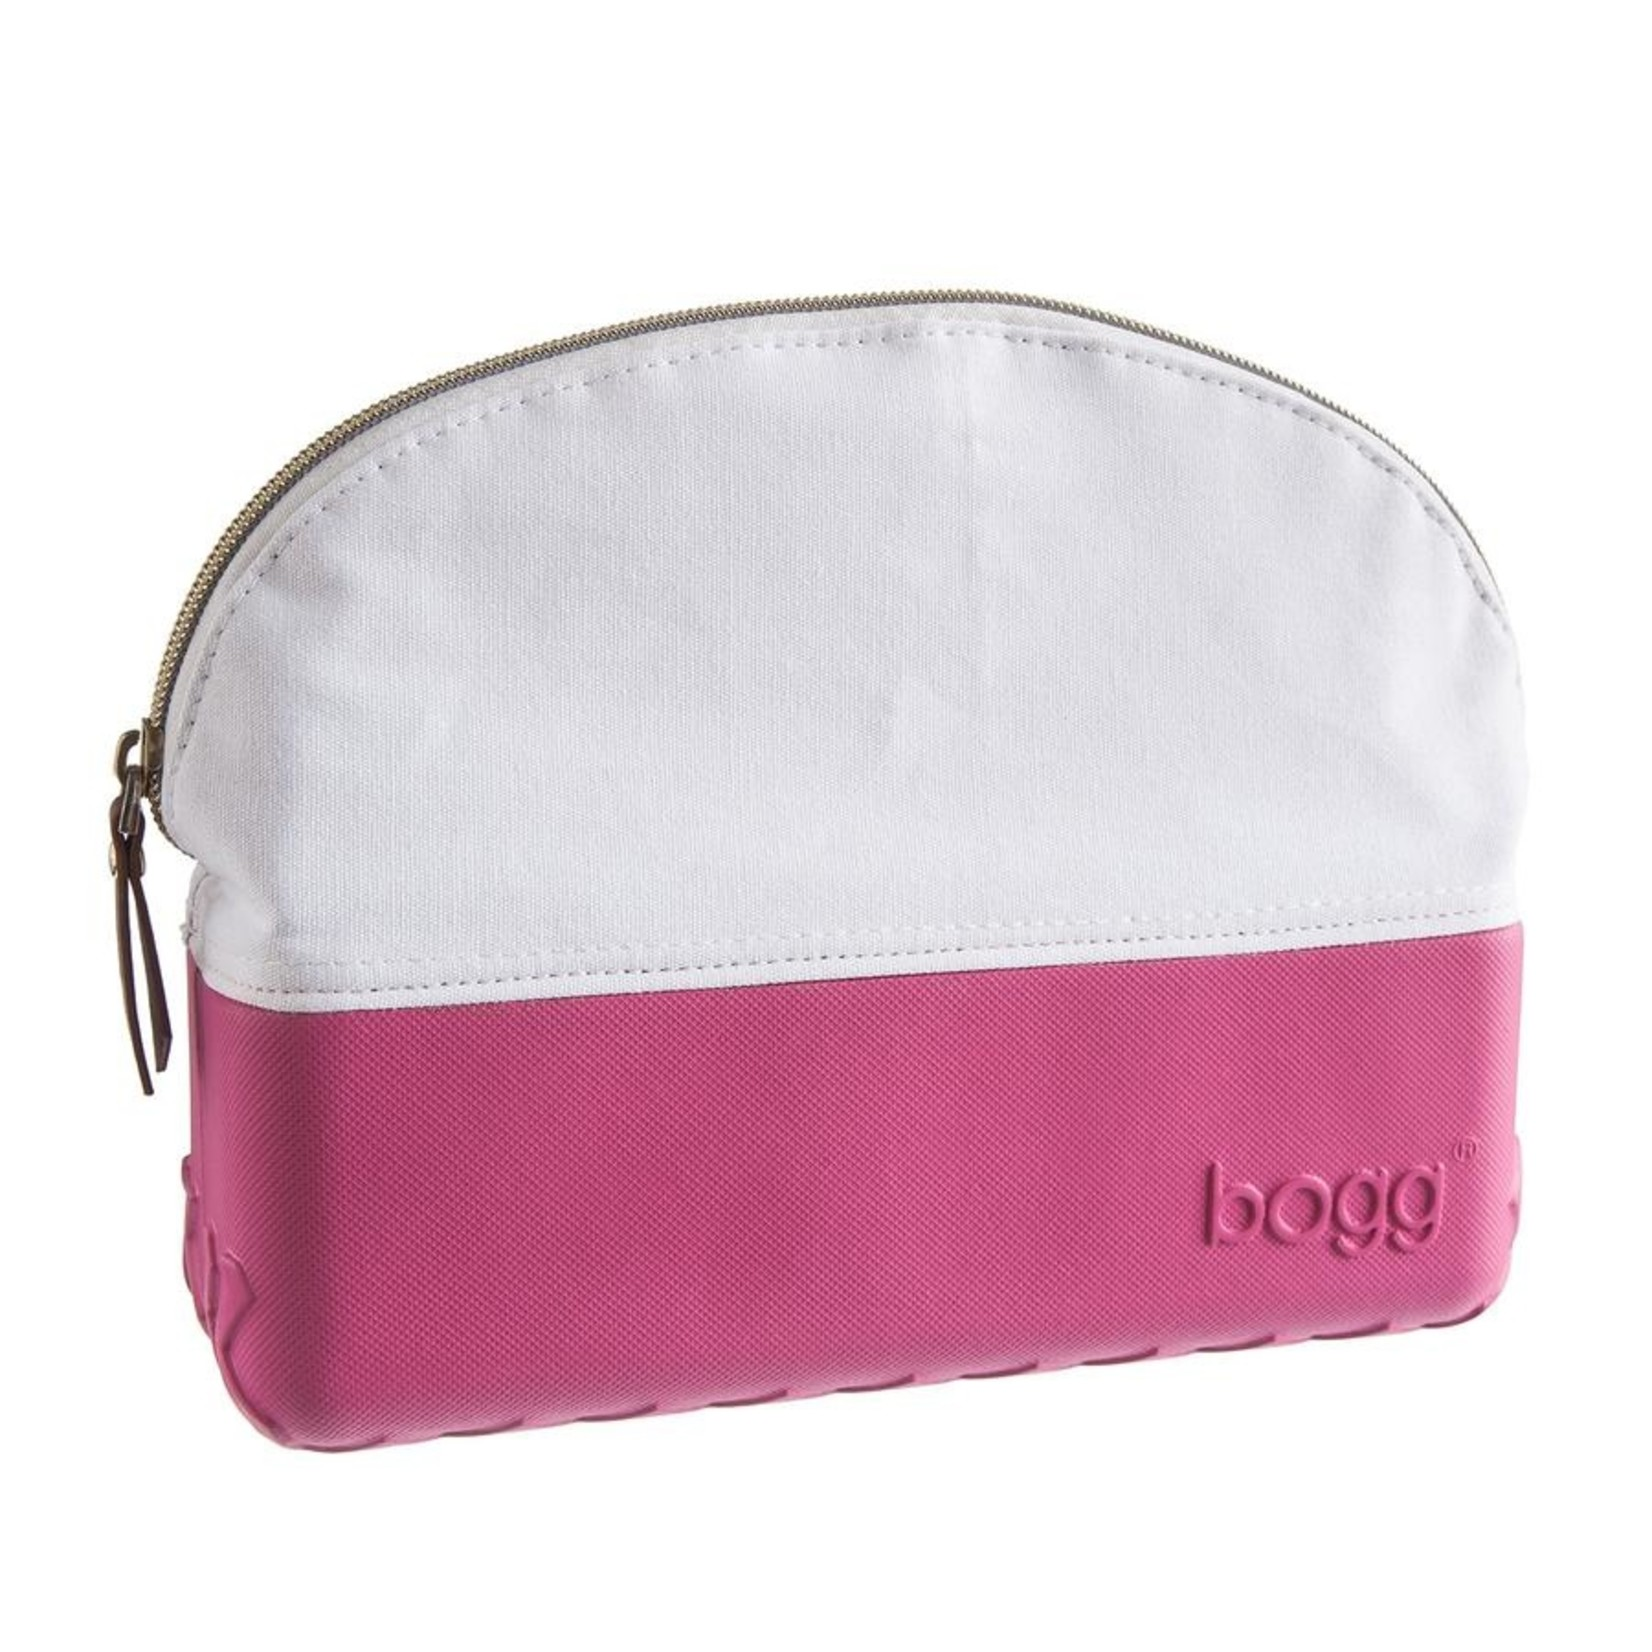 Bogg Bags PINK BEAUTY AND THE BOGG